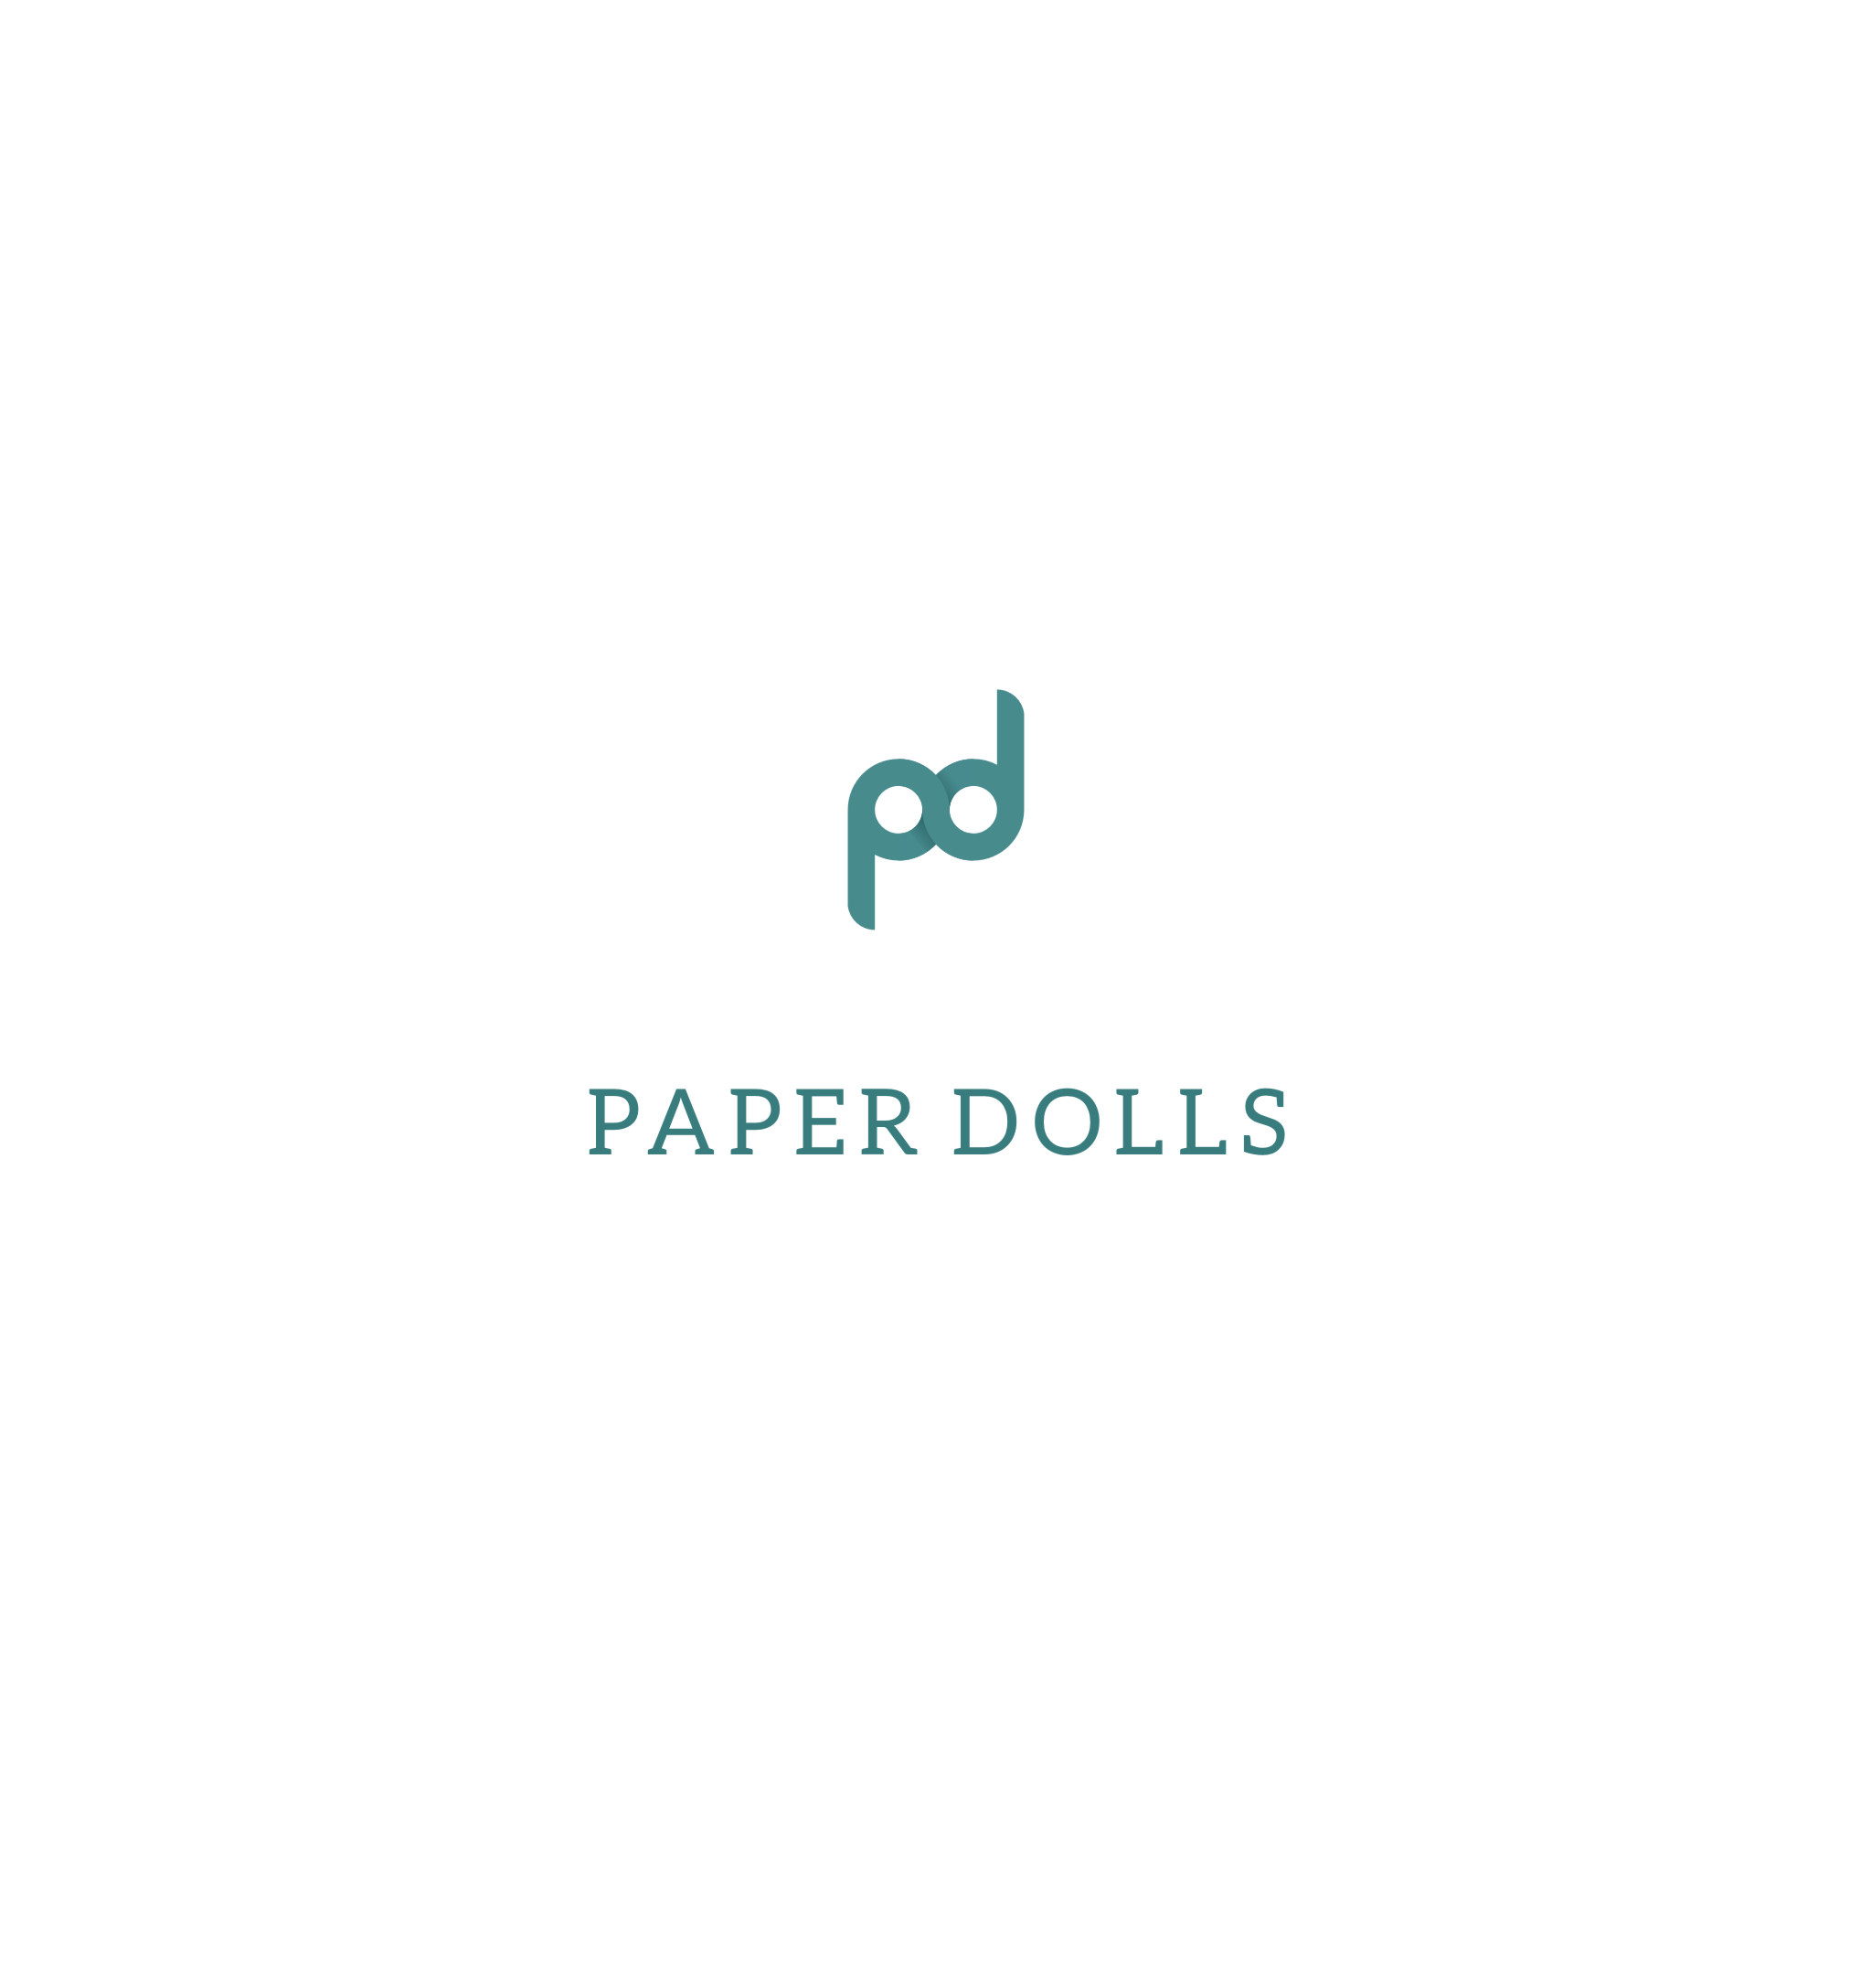 Logo Design by Qwerty78 - Entry No. 10 in the Logo Design Contest Creative Logo Design for Paper Dolls.